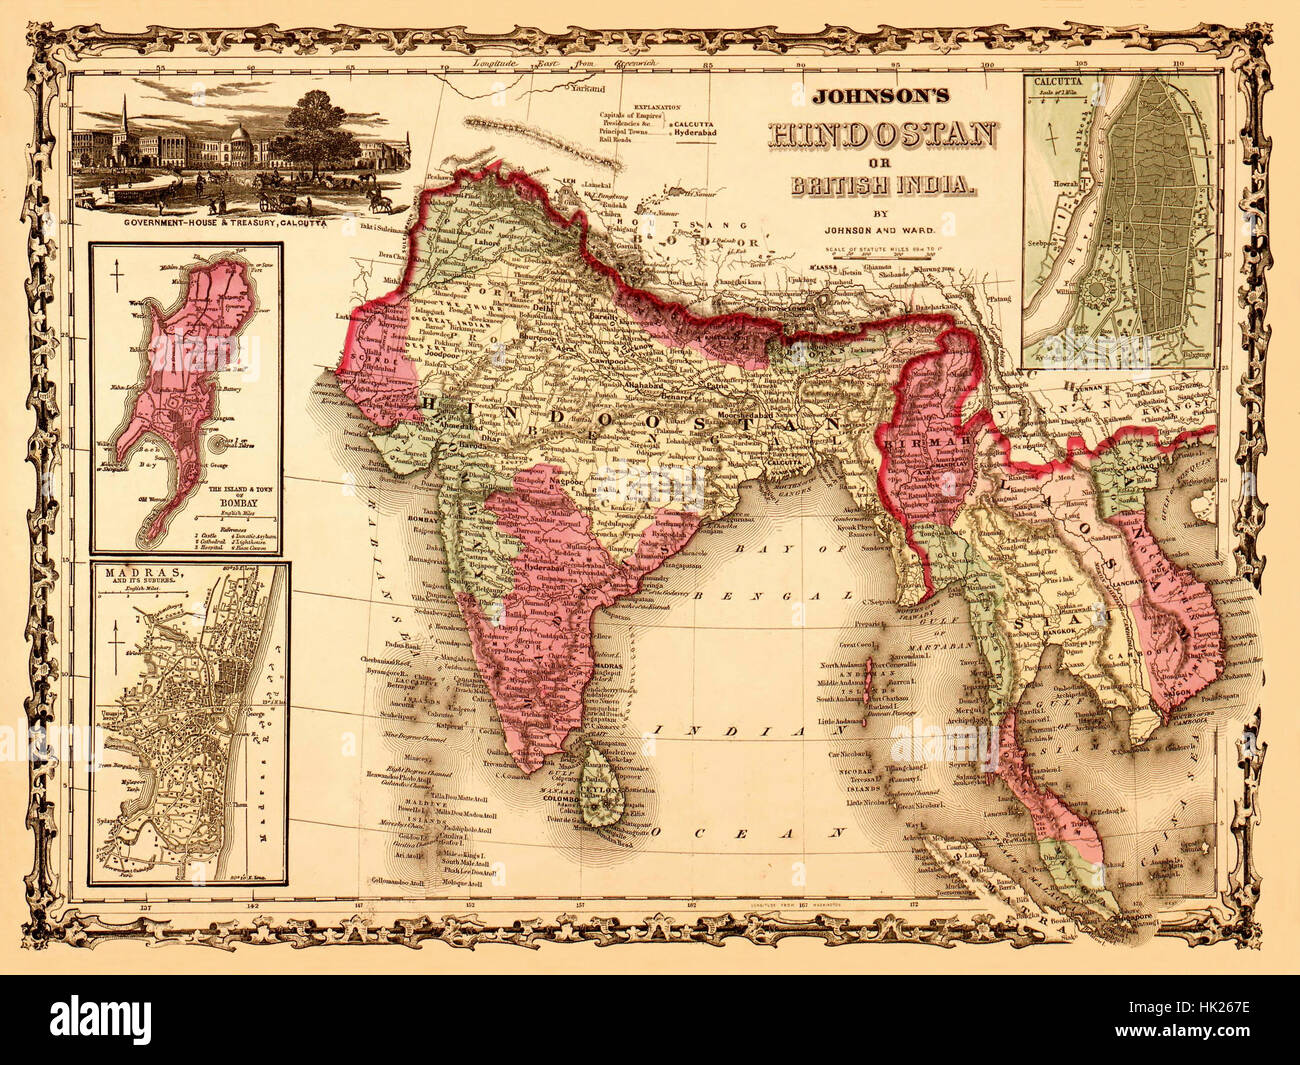 Map Of India 1867 Stock Photo: 132199858 - Alamy Governmet Map Of India Images on nepal india, cities in india, taj mahal india, rivers in india, dharamsala india, kolkata india, mundra india, food in india, mysore india, map southeast asia, kerala india, west bengal india, physical map india, vizag india, goa india, jaisalmer india, shimla india, delhi india, chennai india, ganges river india,